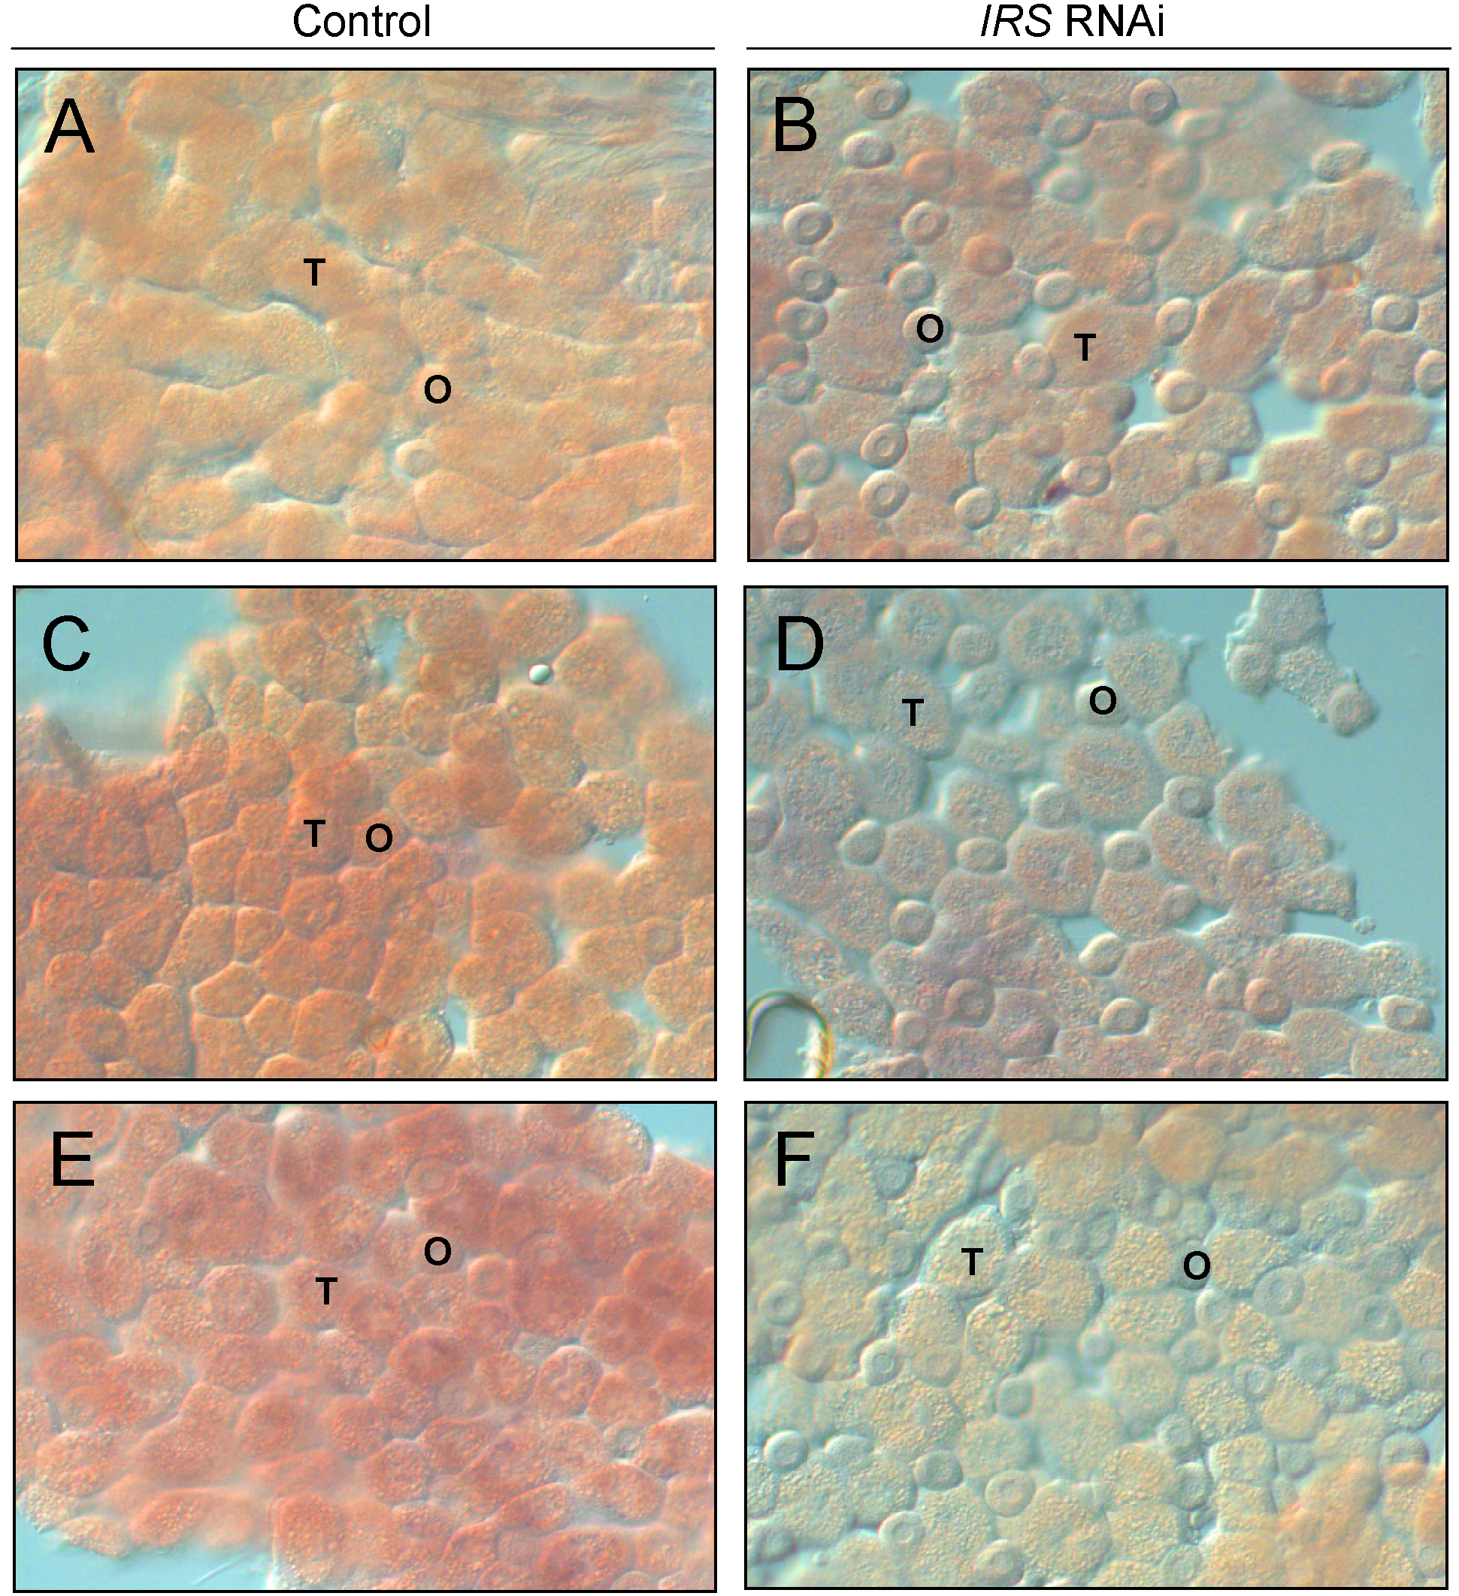 Verification of <i>IRS</i> RNAi in peripheral fat body by whole-mount <i>in situ</i> hybridization.